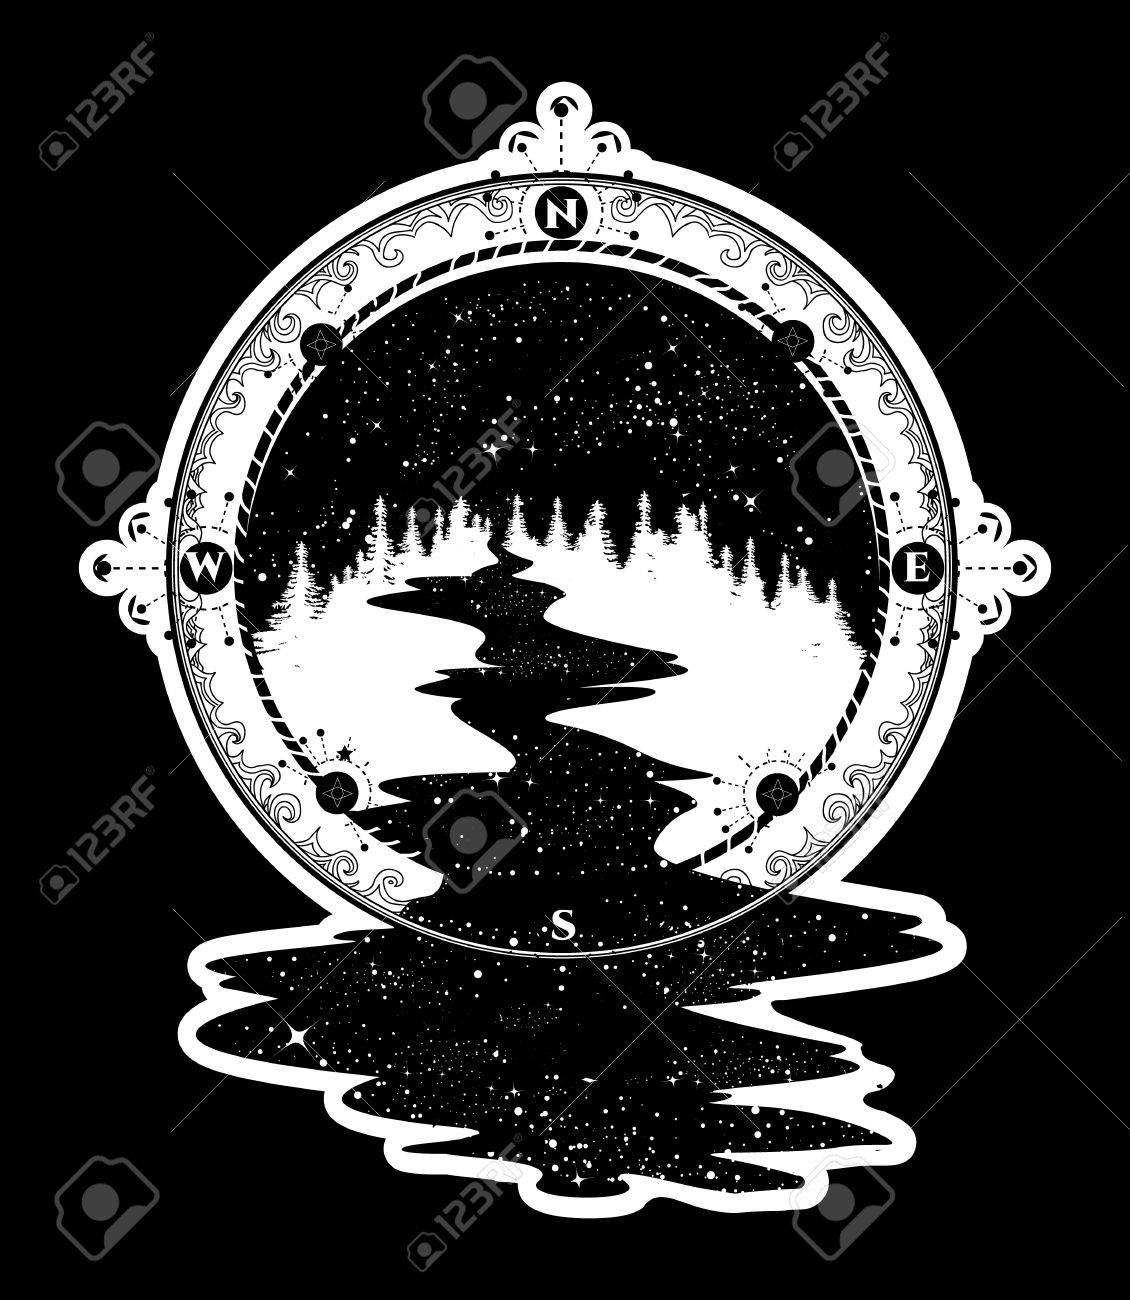 Star river flows from the compass tattoo art travel symbol star river flows from the compass tattoo art travel symbol tourism antique compass biocorpaavc Images